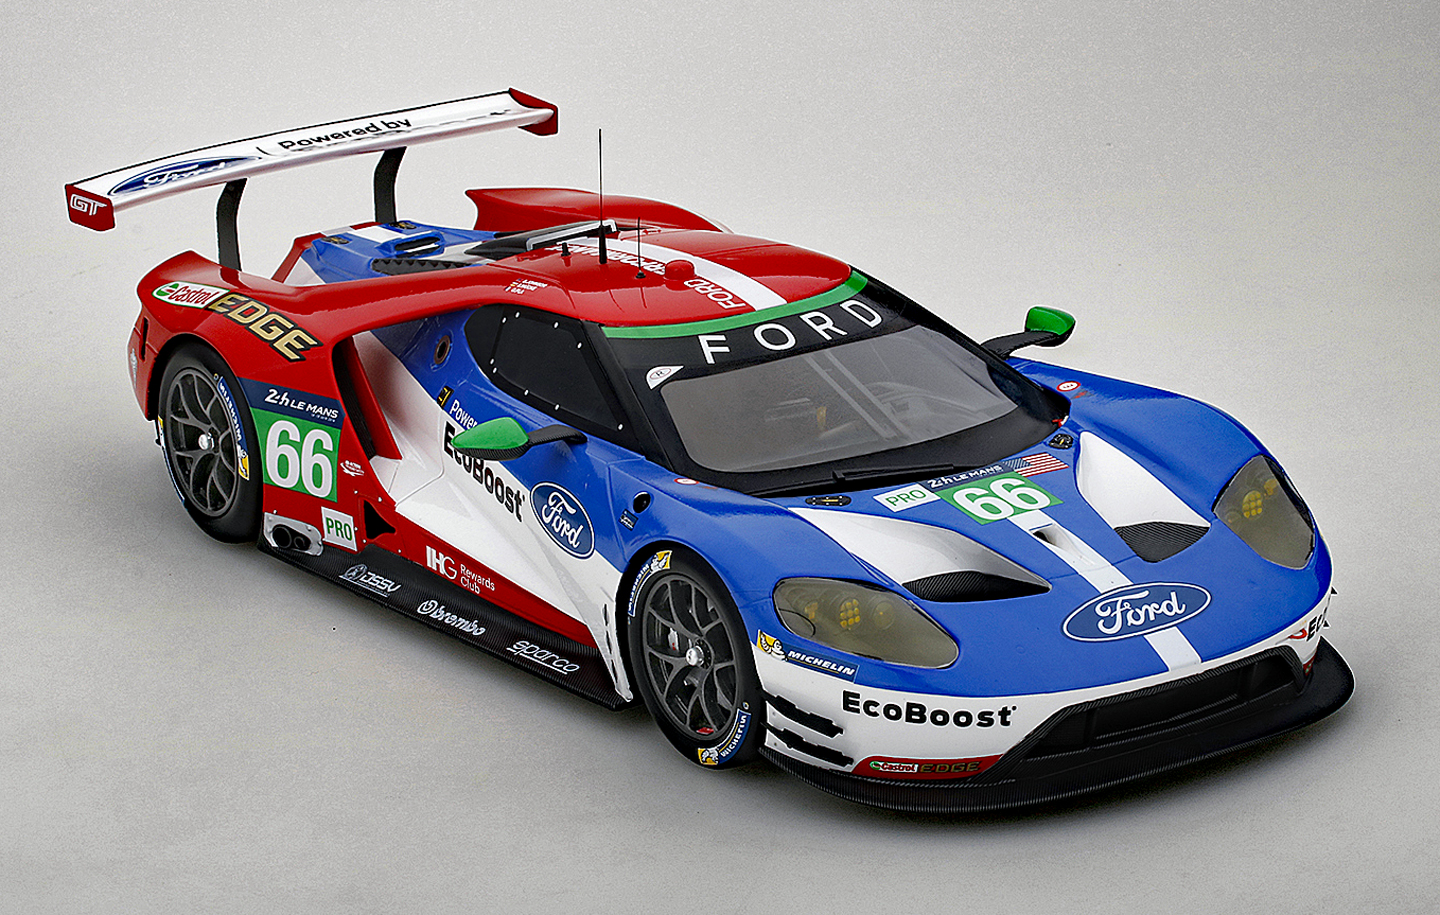 ford gt 66 4th lmgte pro le mans 2016 ts0066. Black Bedroom Furniture Sets. Home Design Ideas